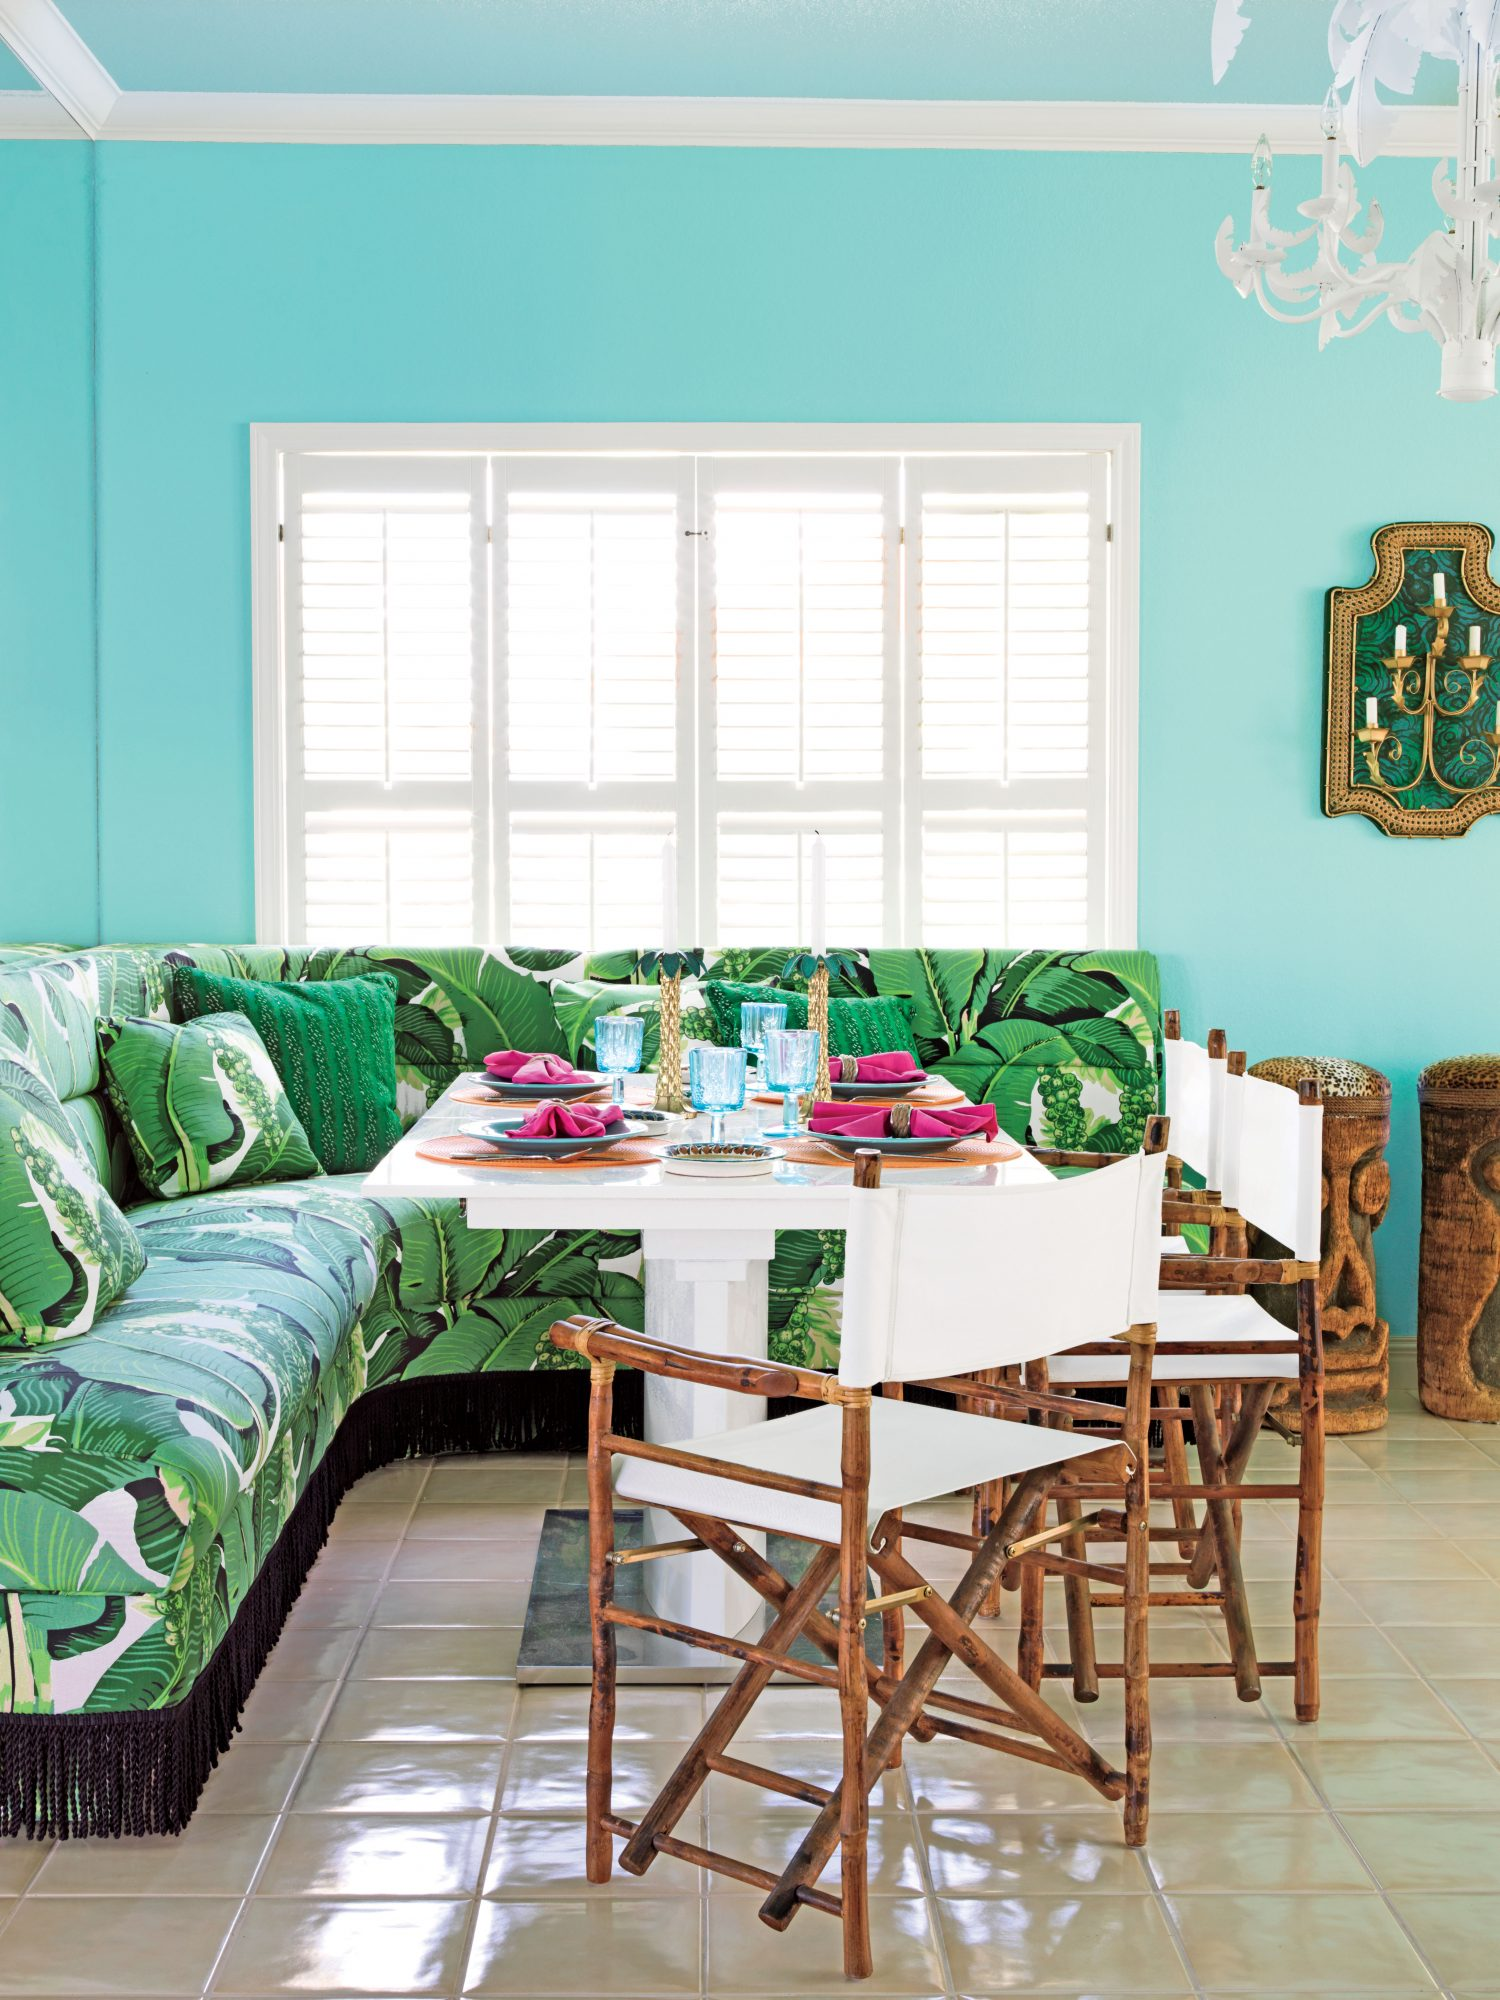 The bold, leafy pattern on this South Padre Island, Texas, banquette creates a tropical atmosphere. Bright eggshell paint, vintage tiki stools, and folding director's-style chairs further enhance the effect.